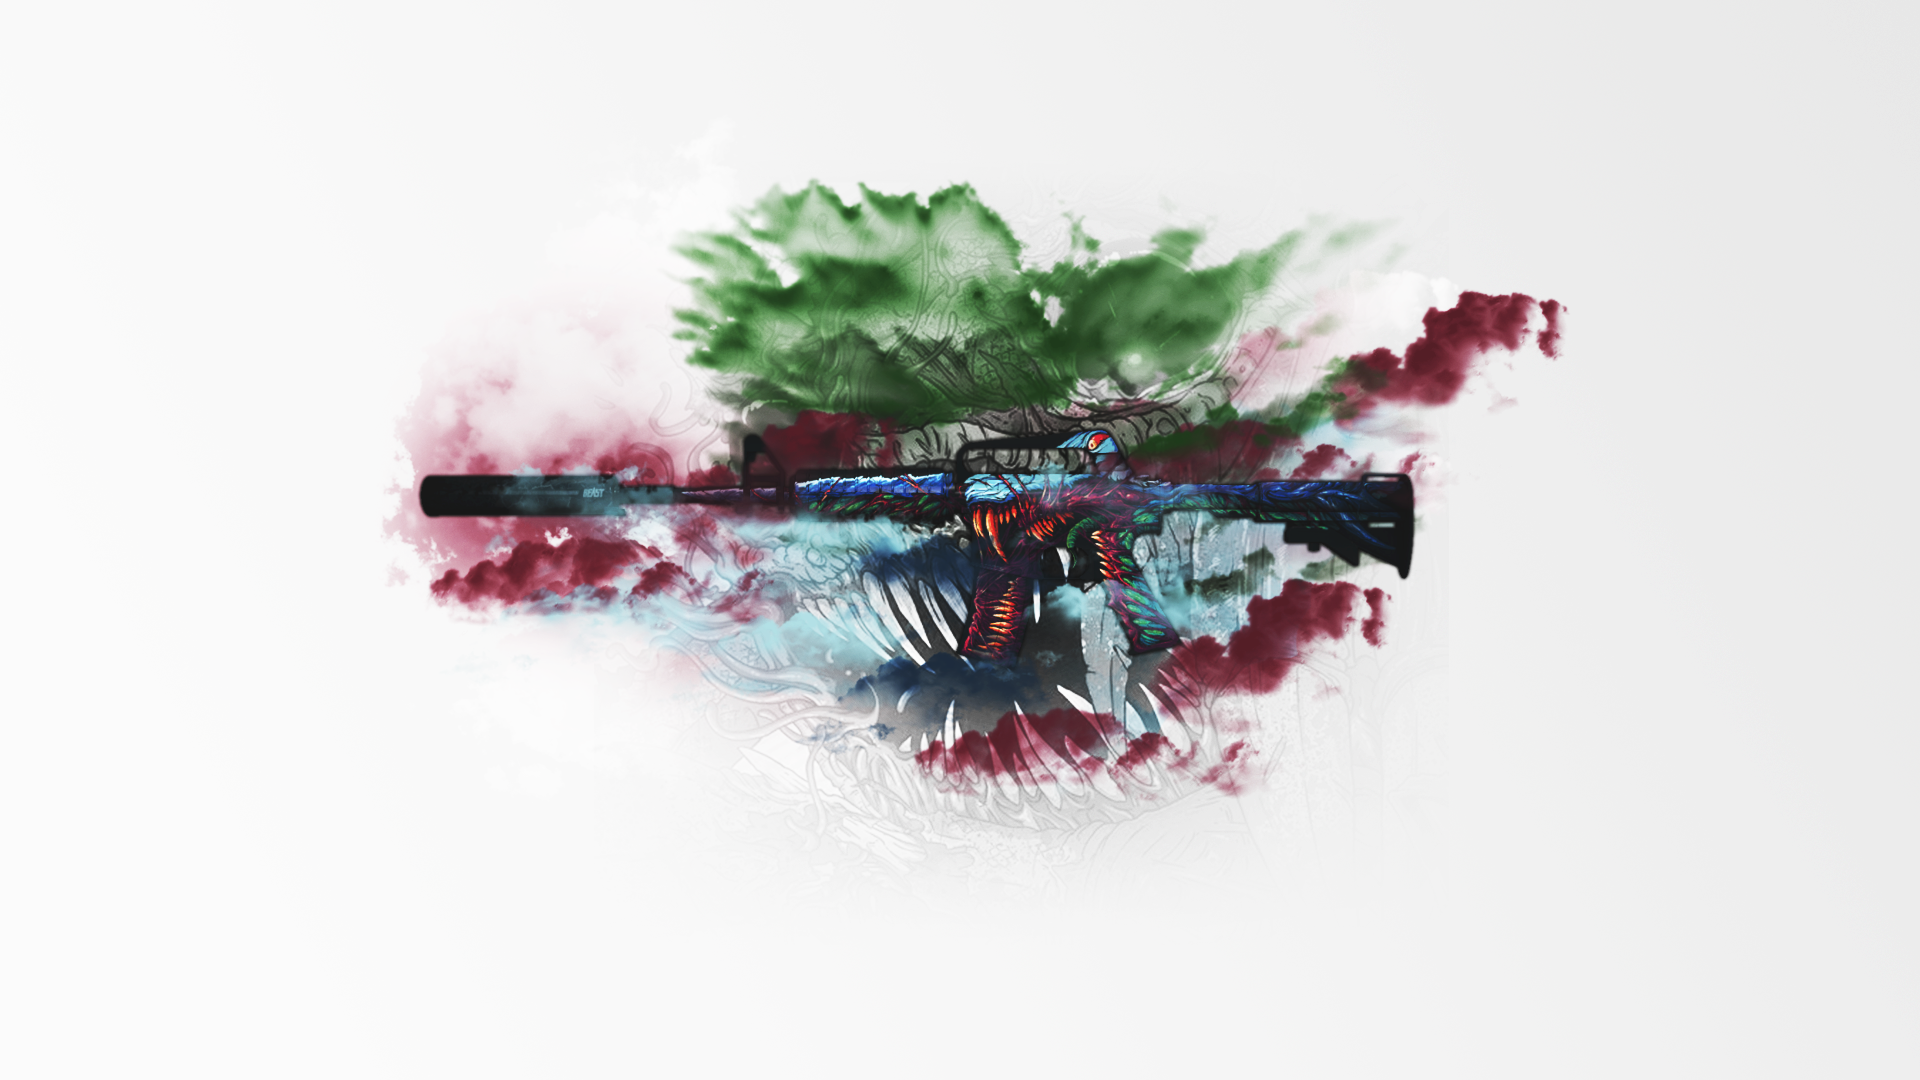 Is there a 1080p Hyper Beast wallpaper anywhere GlobalOffensive 1920x1080